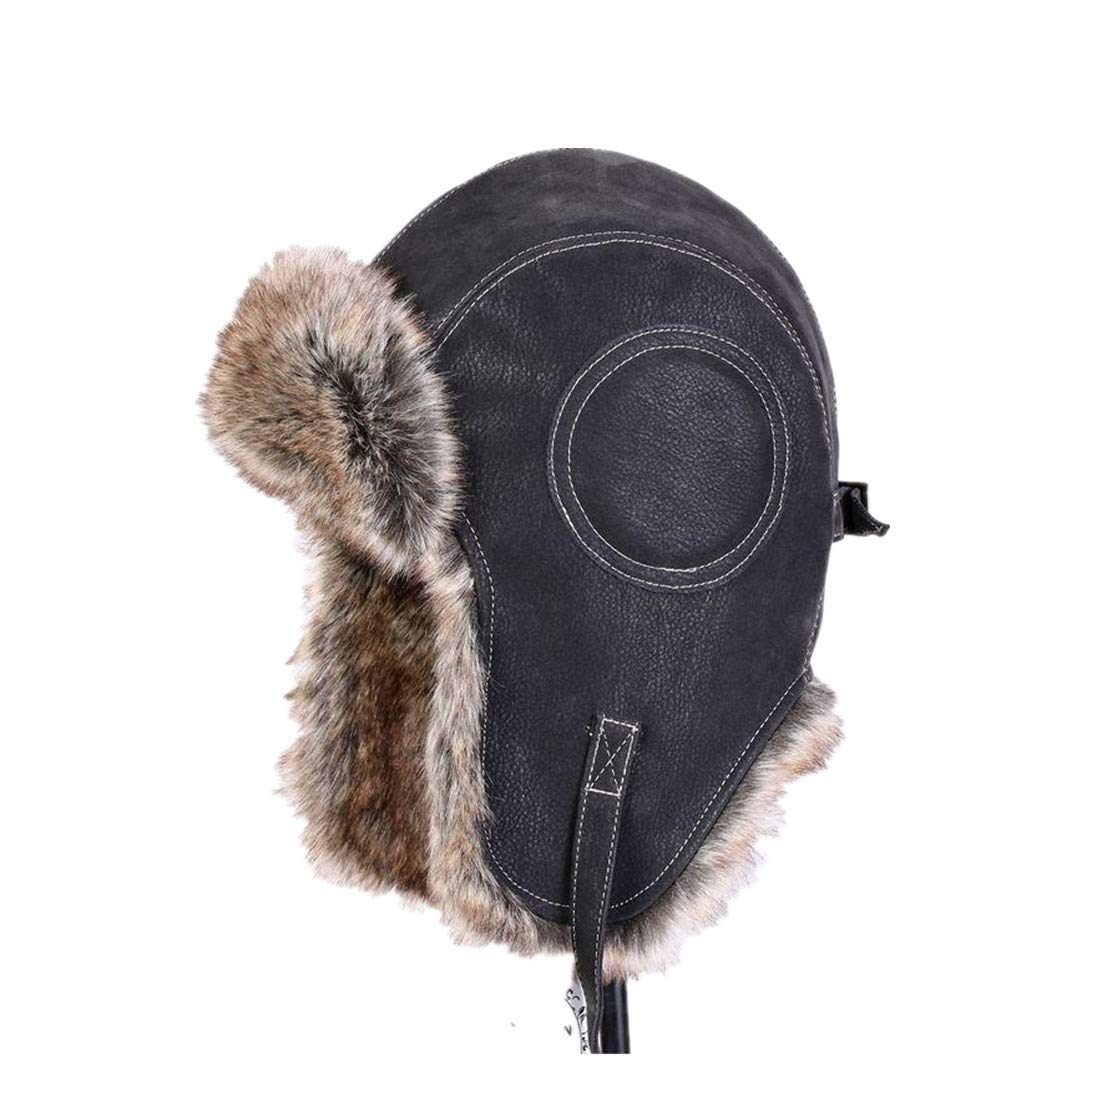 Winter Artificial Leather Hats Casual Men Windproof Warm Bomber Hats Motorcycle Flight Ear Protection Cap